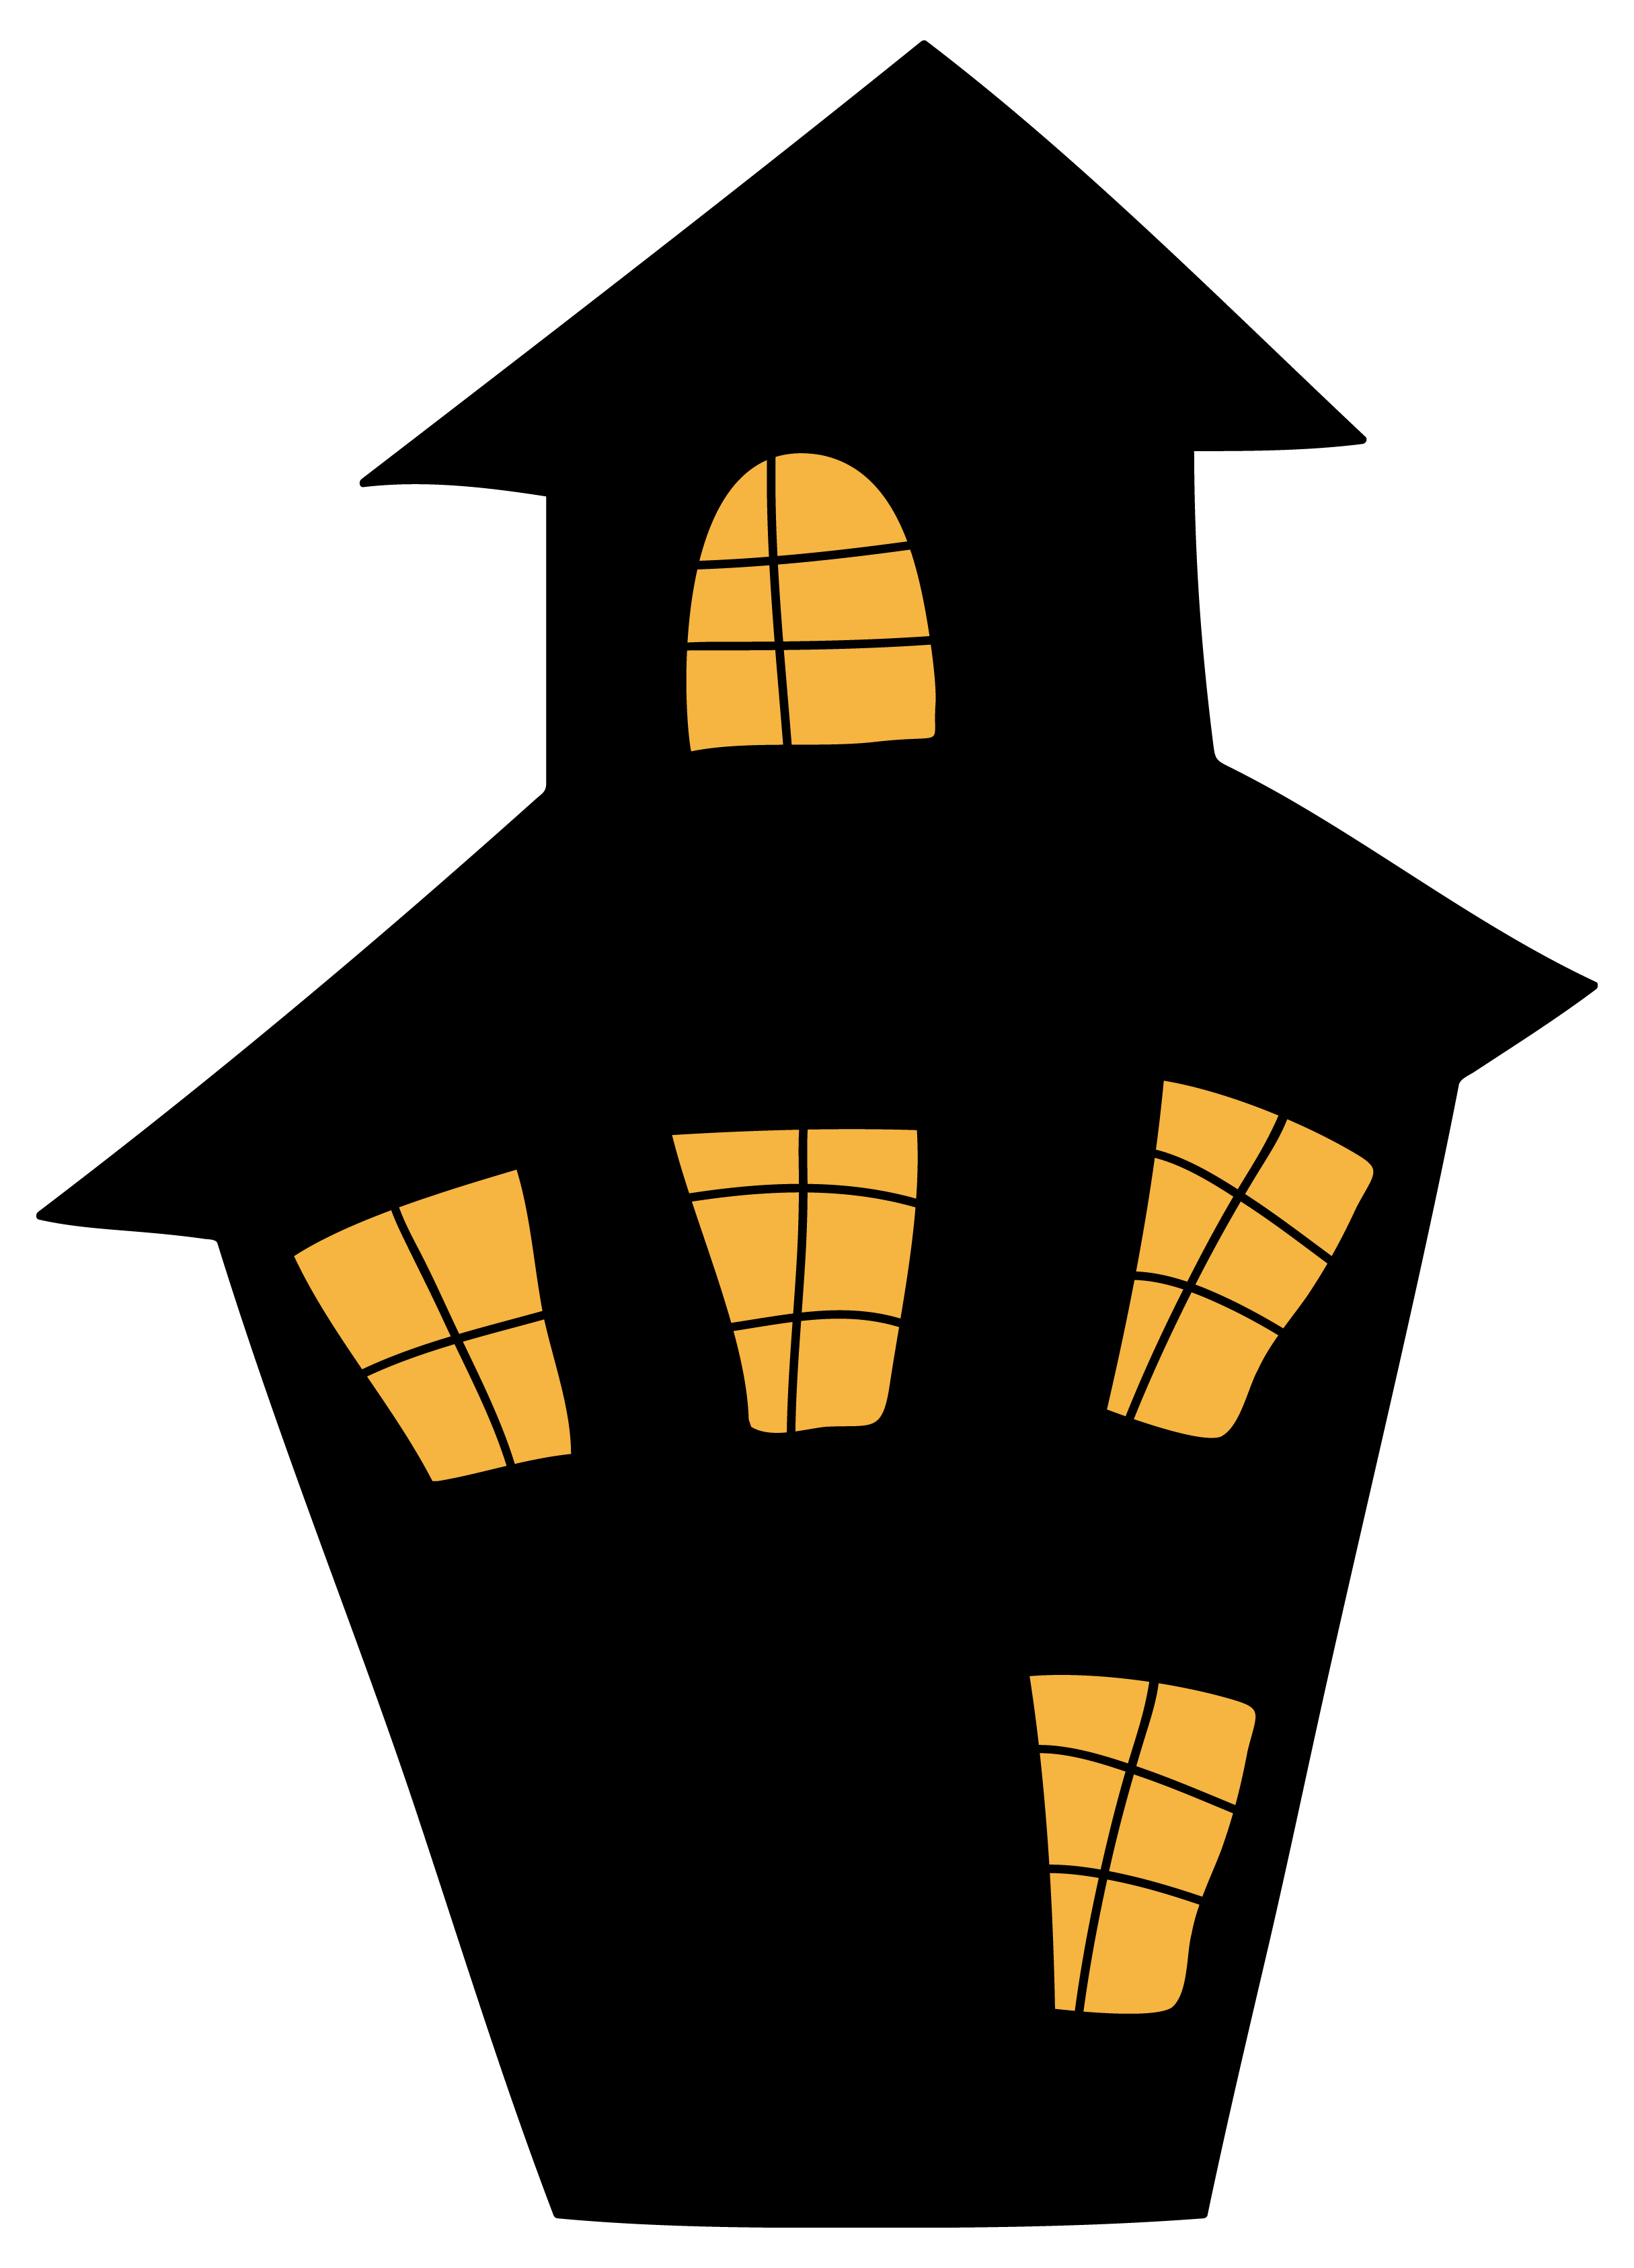 House on hill clipart picture freeuse House Clipart Png. House Clipart Png - Deltasport.co picture freeuse